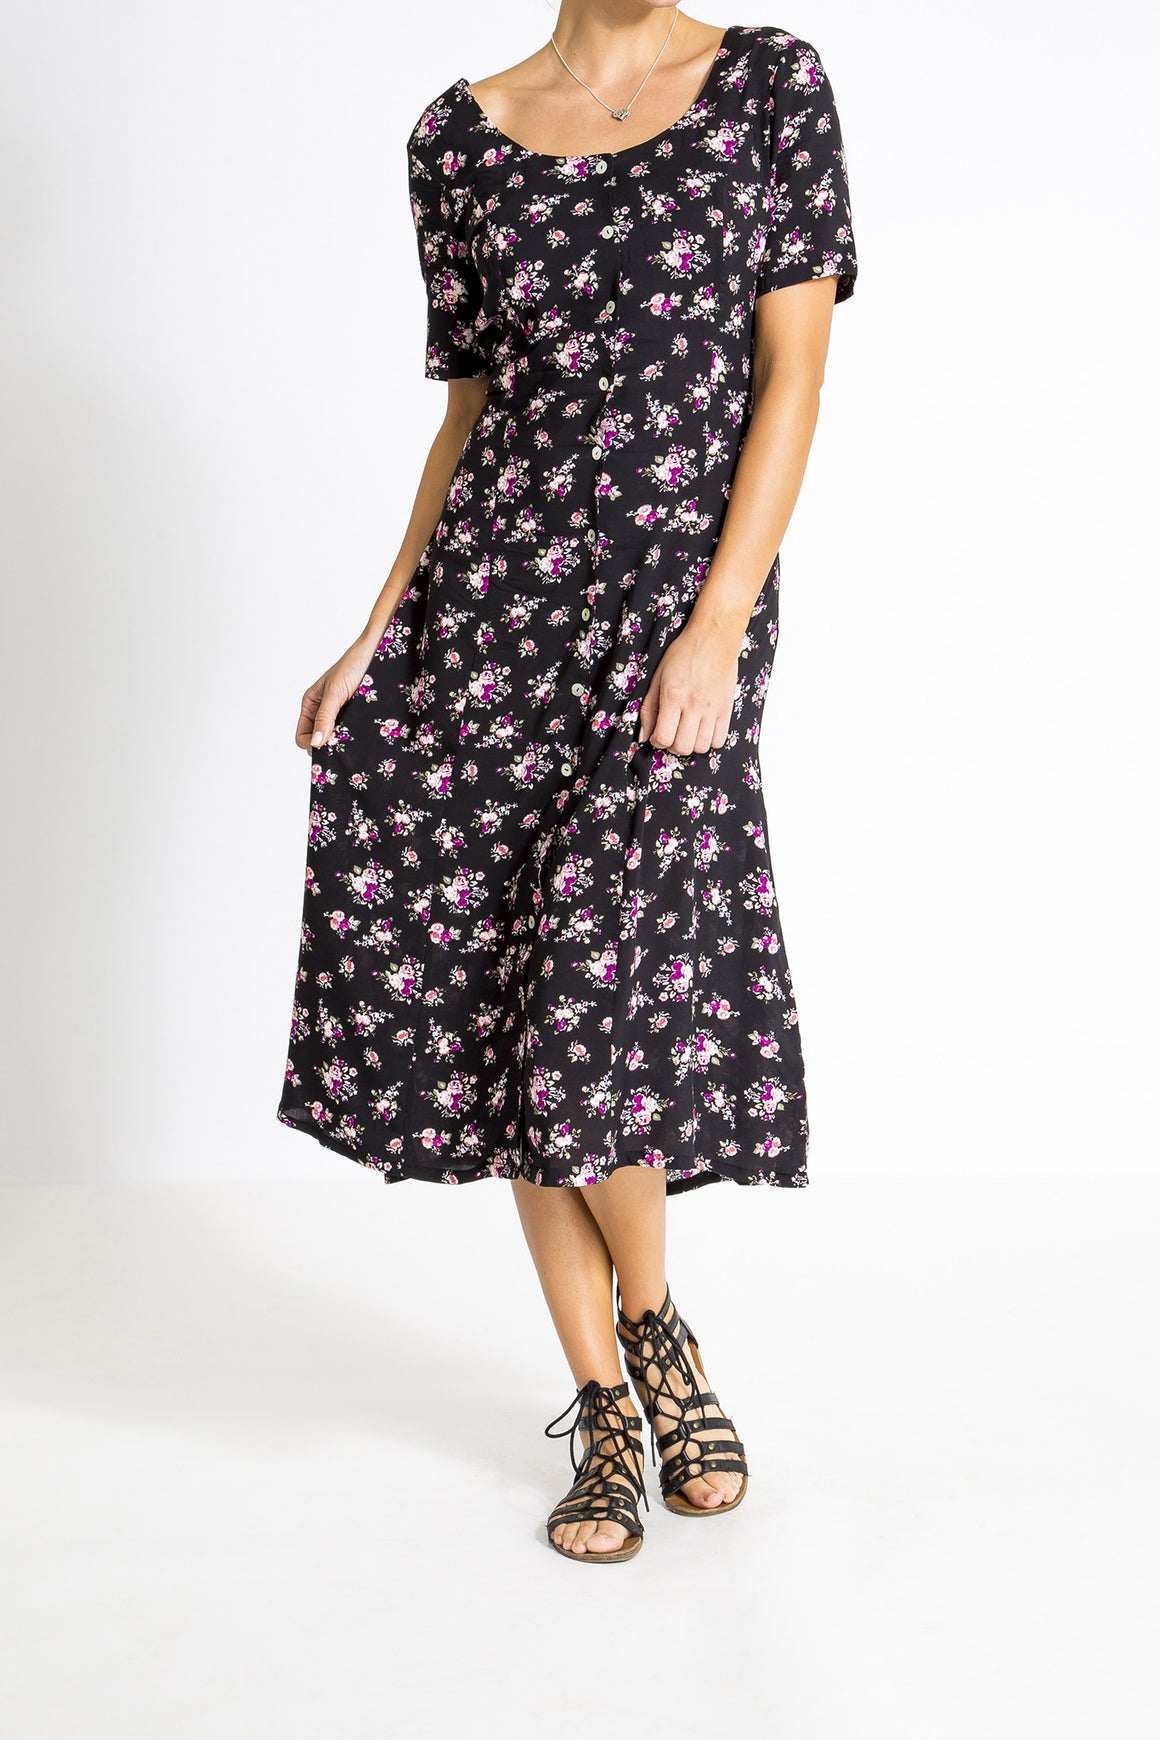 Summer Days Dress - Black Roses